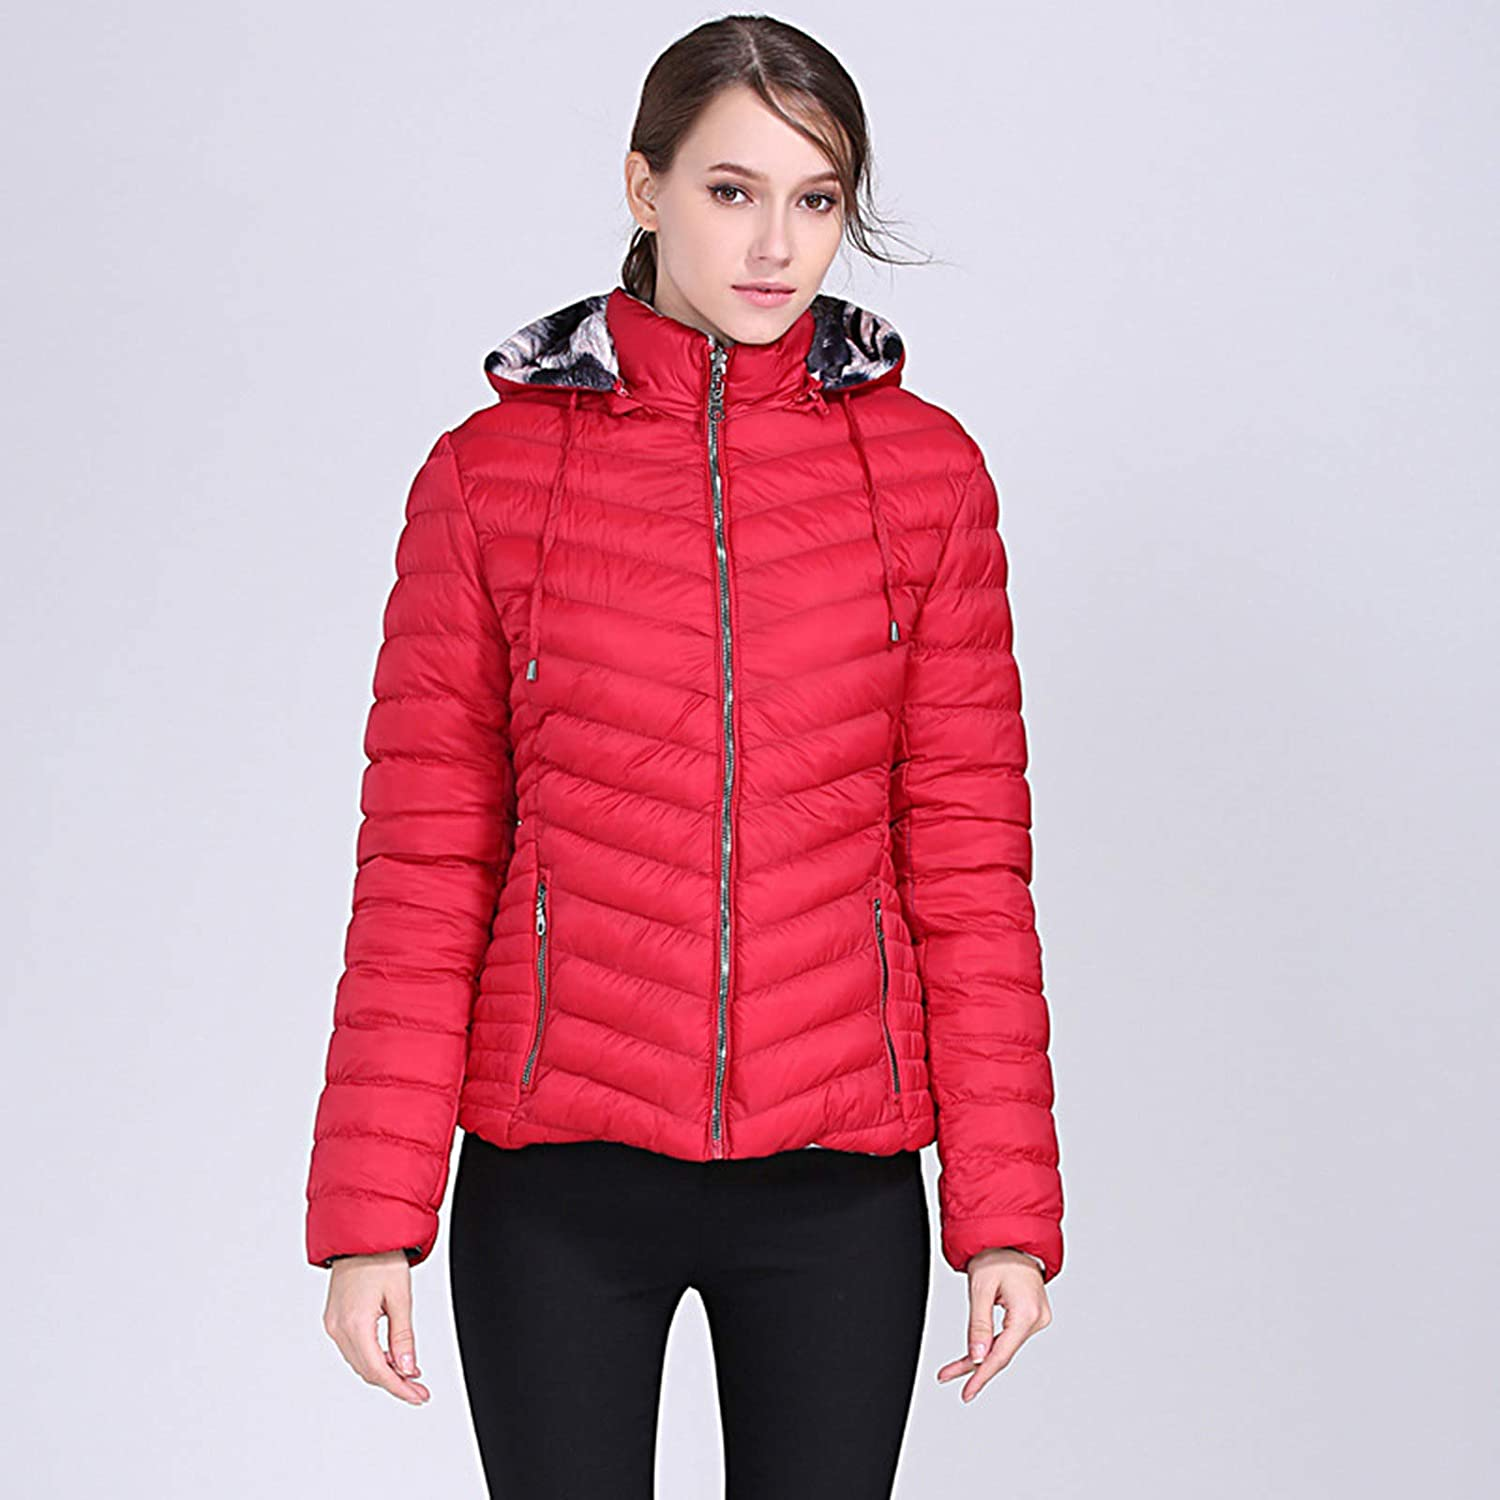 ZhaoZC New Ladies Down Padded Jacket, Camouflage Solid Color Double-Sided Padded Jacket Women,Red,L